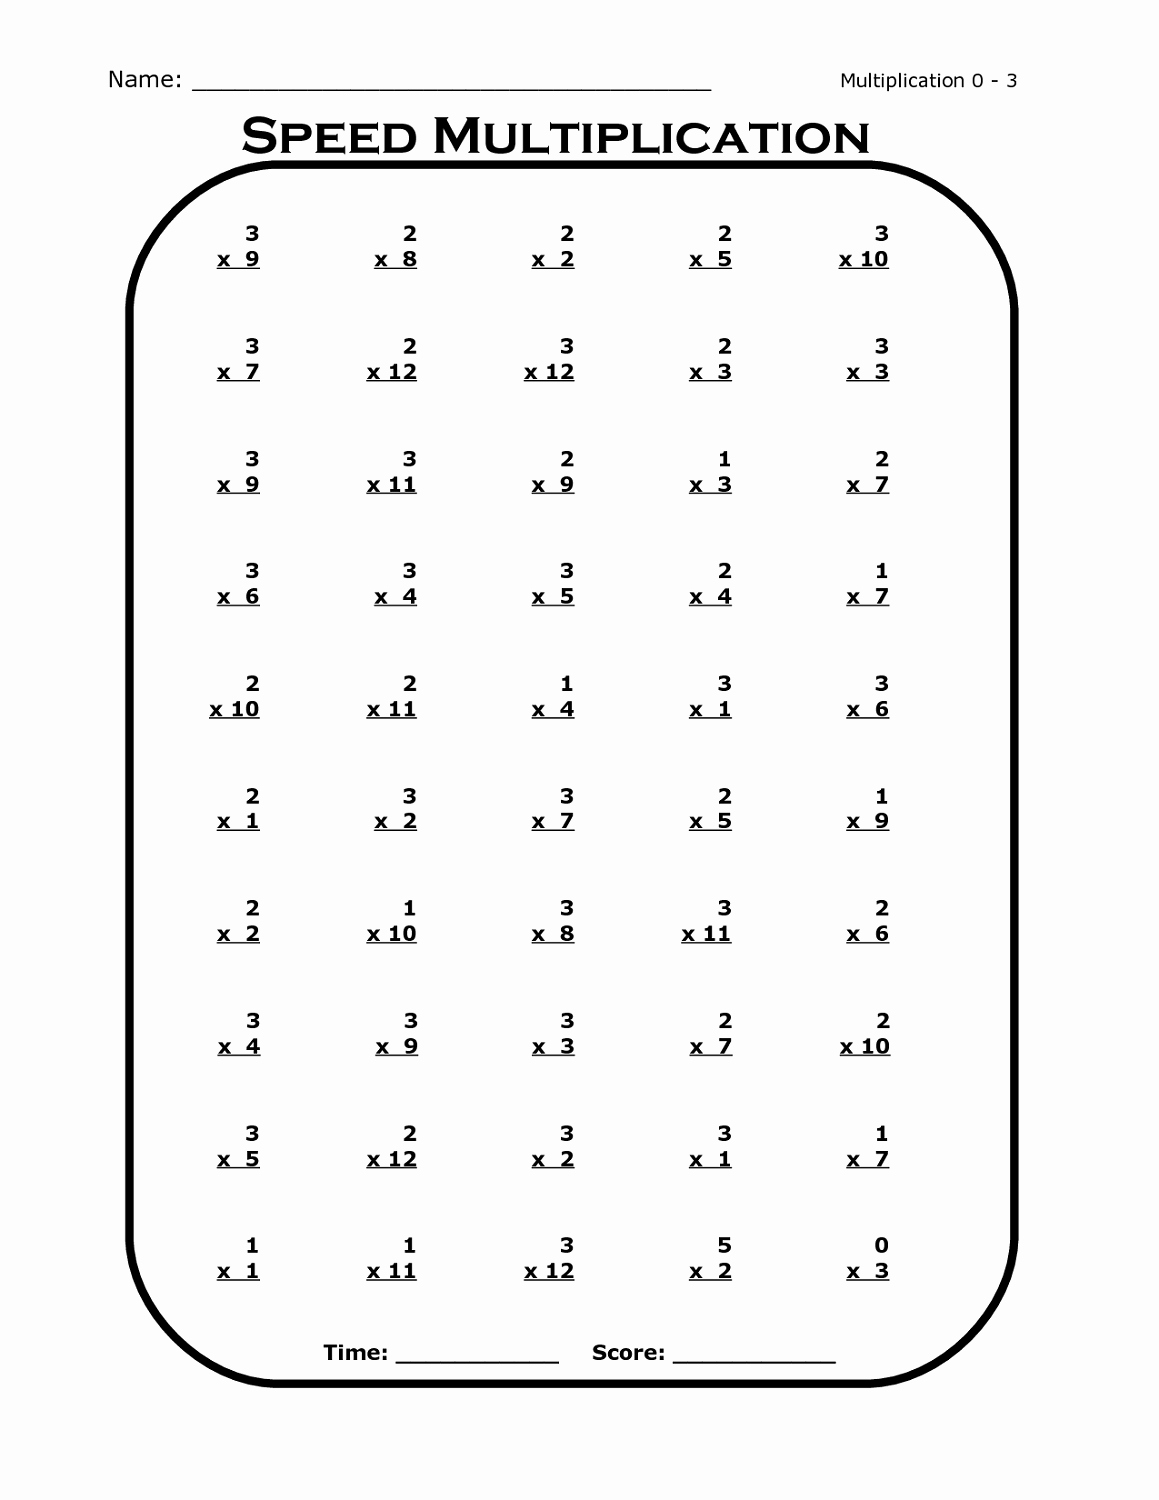 3 Times Table Worksheet Awesome Easy and Simple 3 Times Table Worksheets